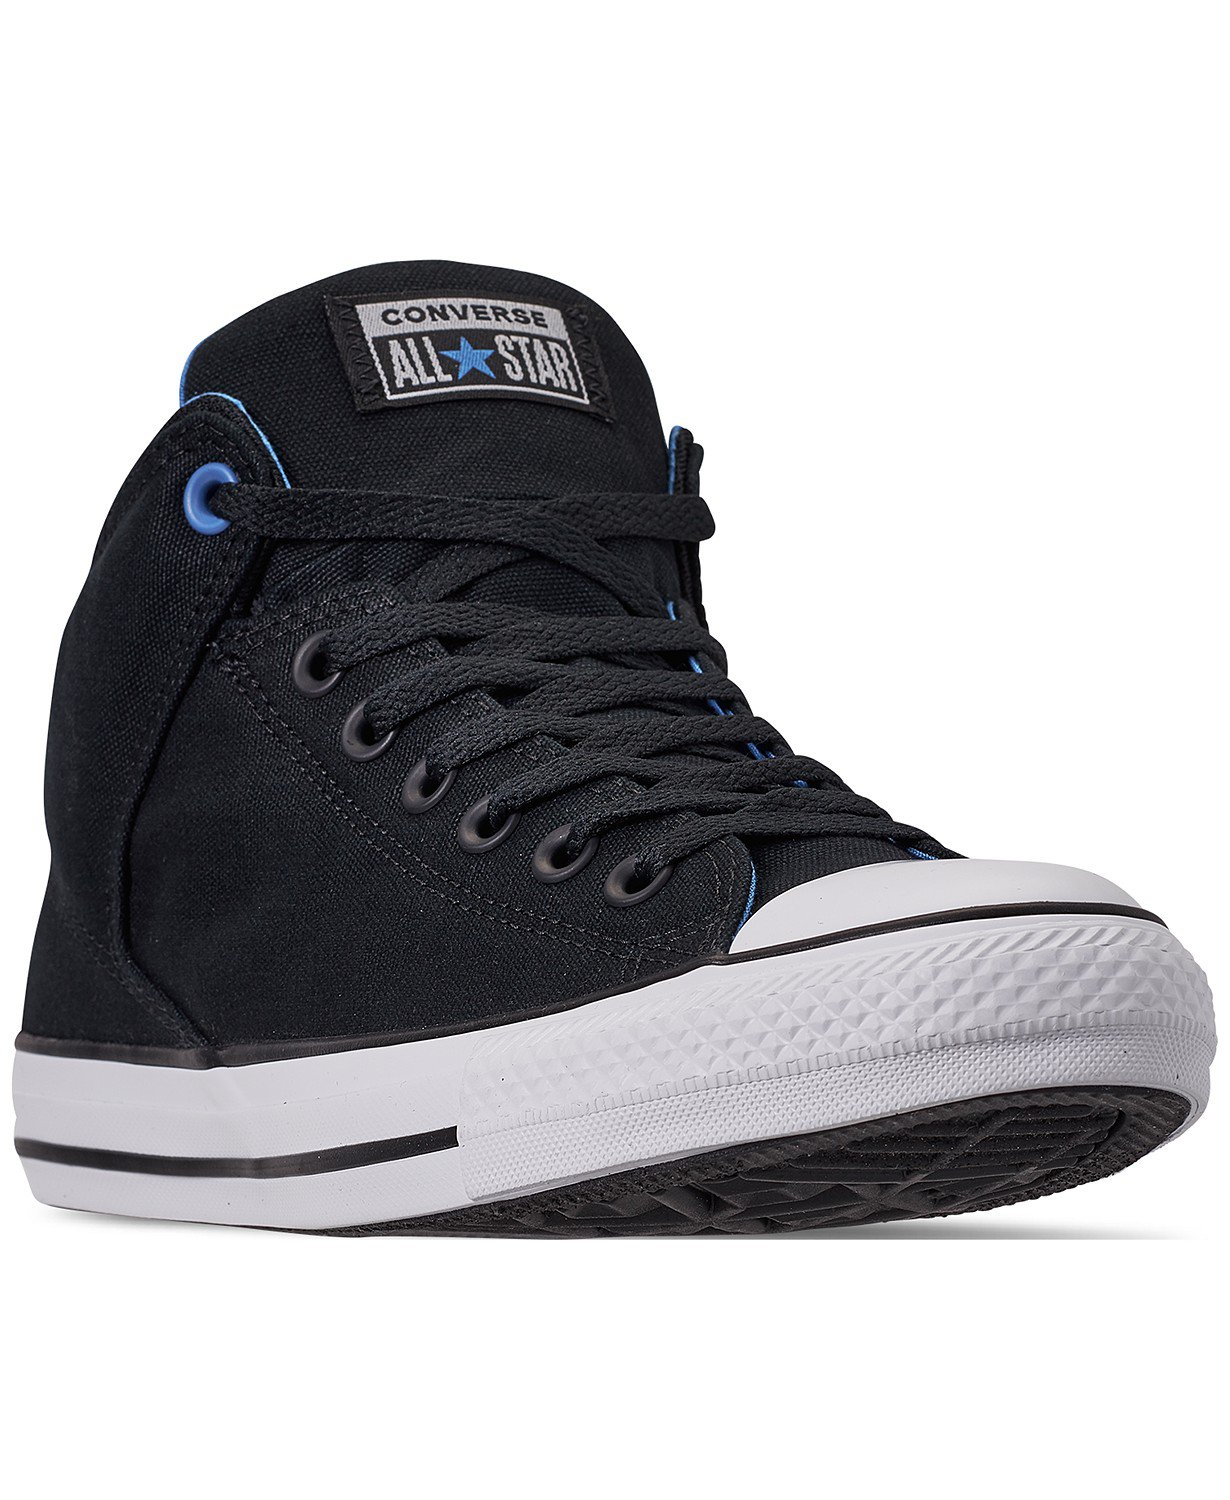 Converse Chuck Taylor All Star High Street Casual Sneakers